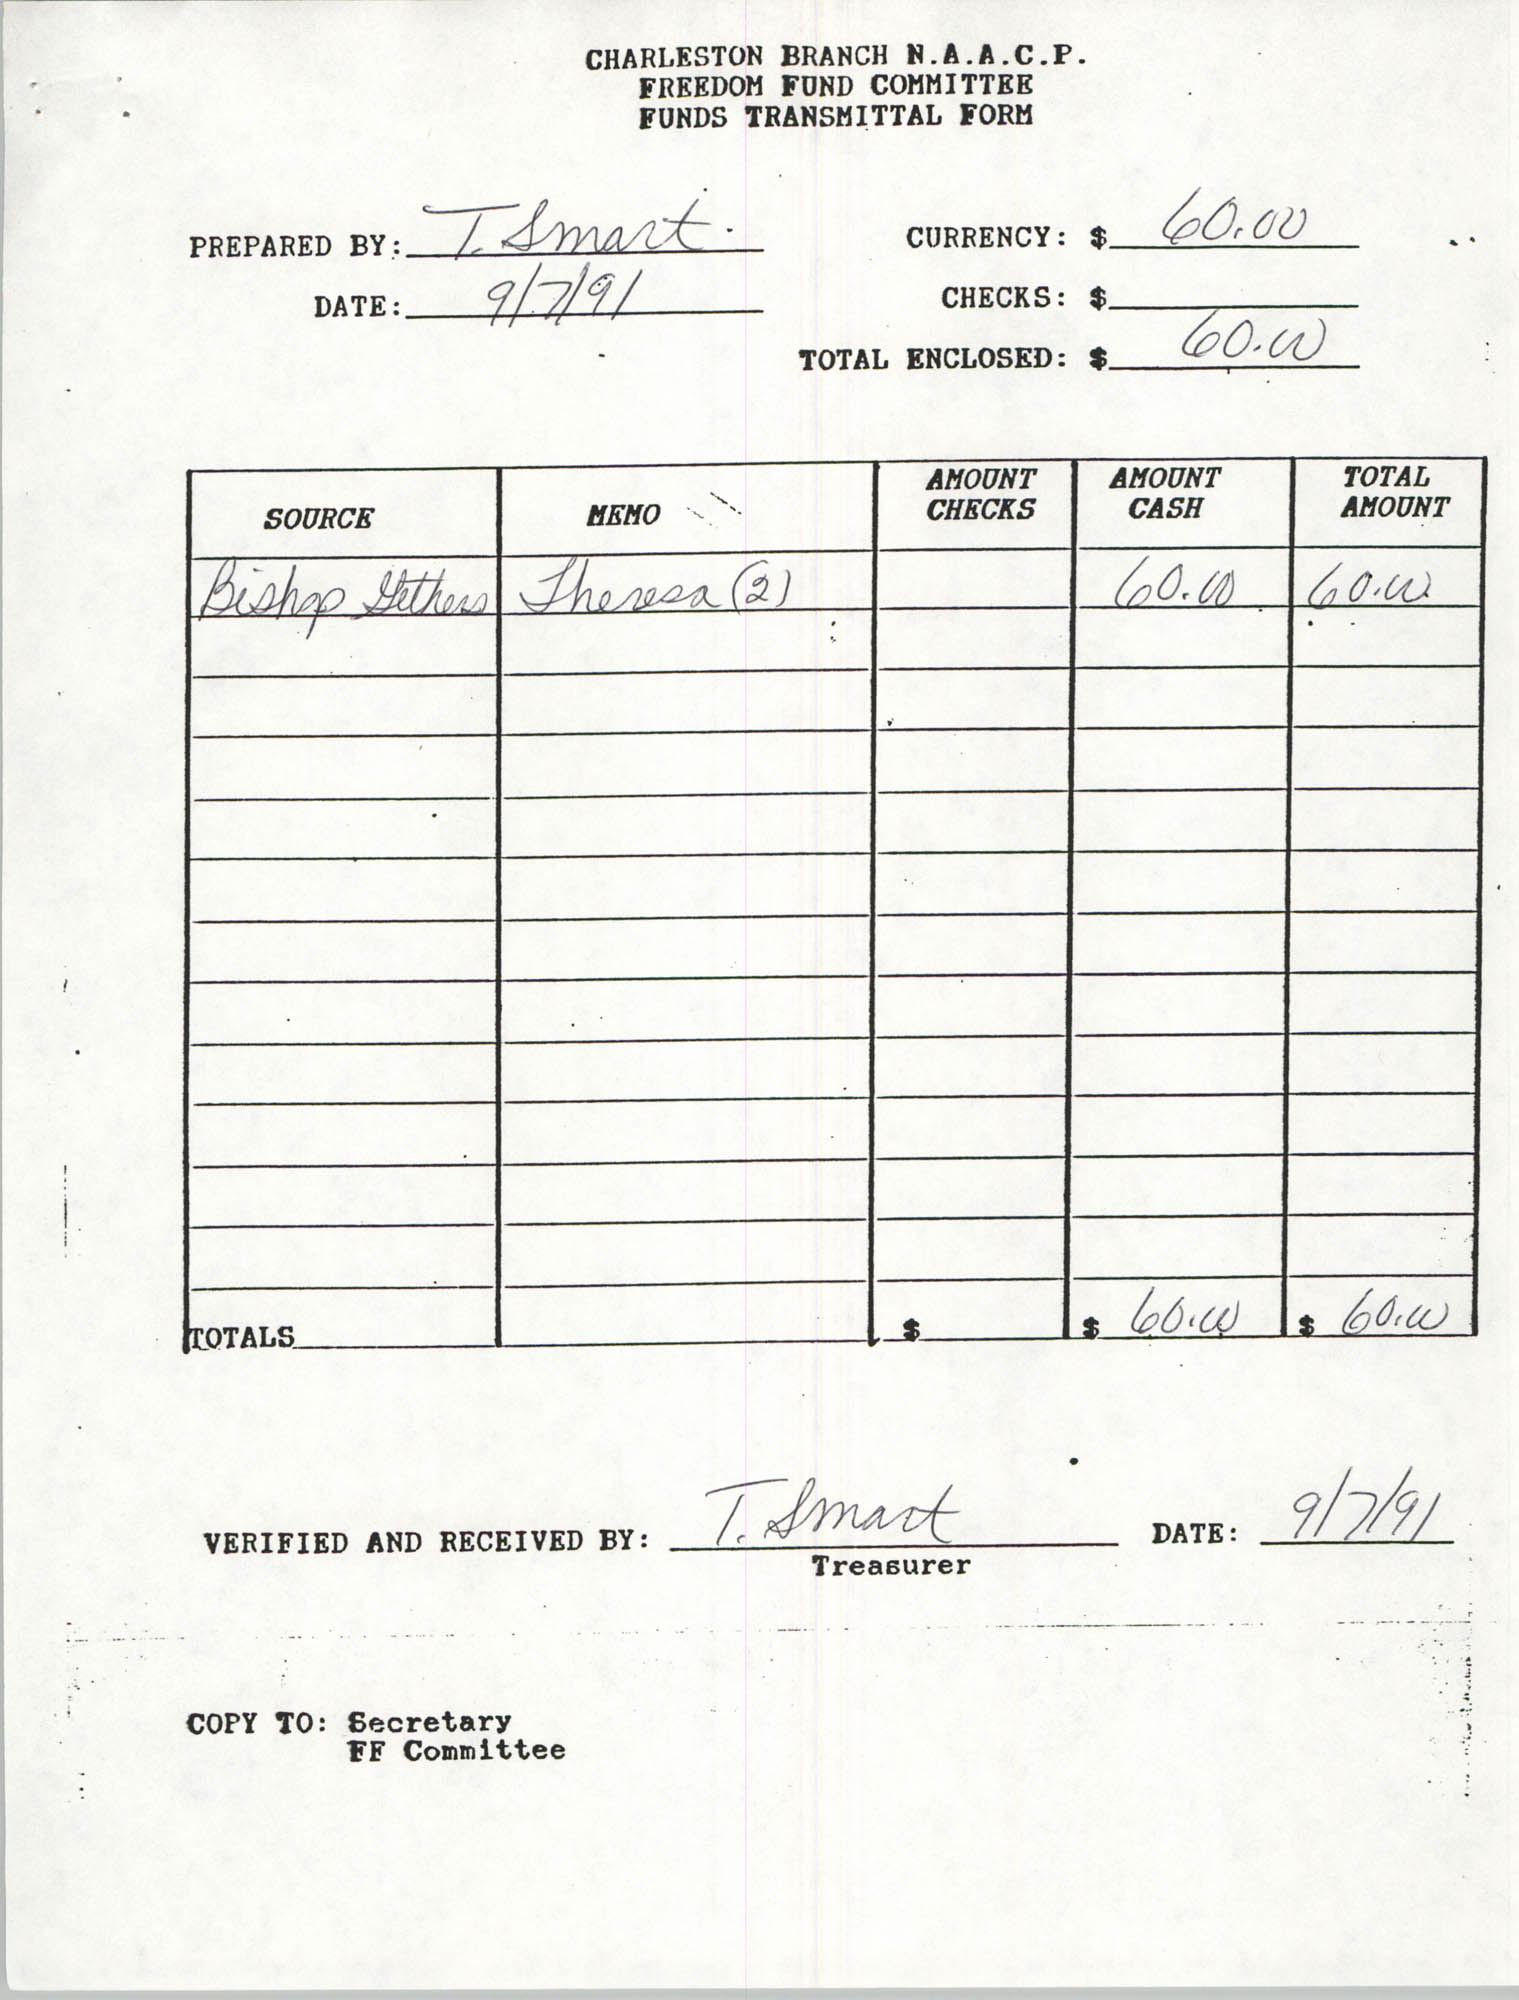 Charleston Branch of the NAACP Funds Transmittal Forms, September 1991, Page 28